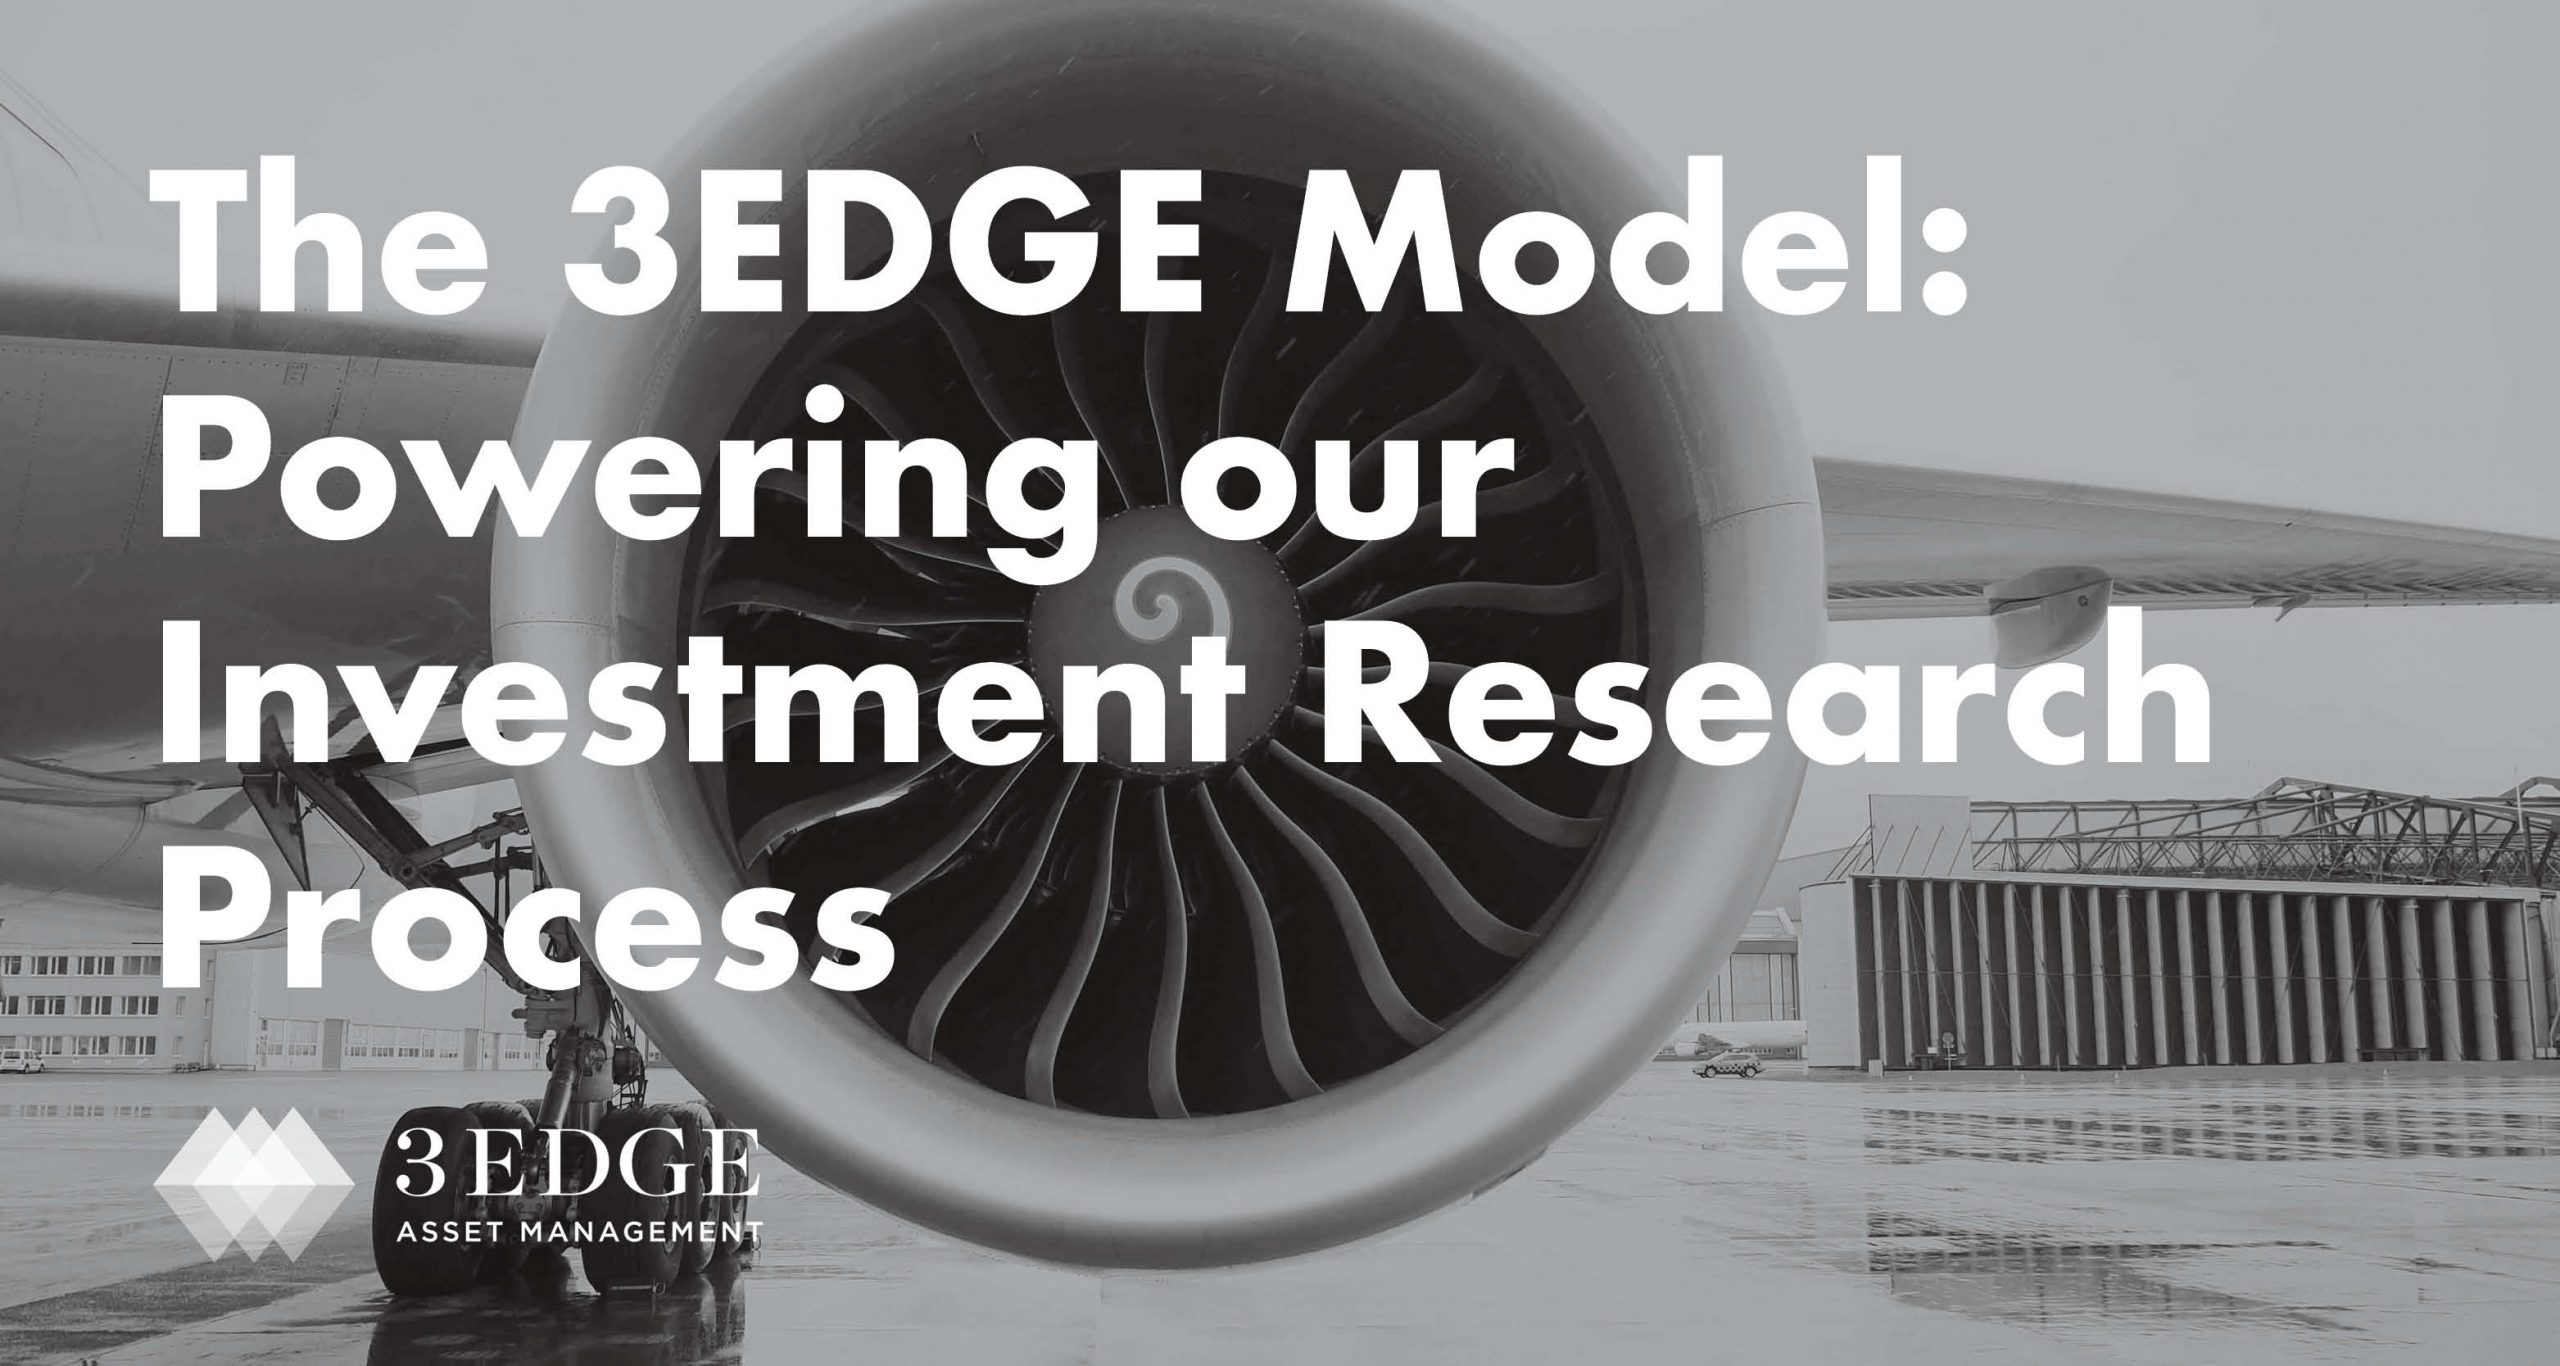 3EDGE Investment Research Model Thumbnail